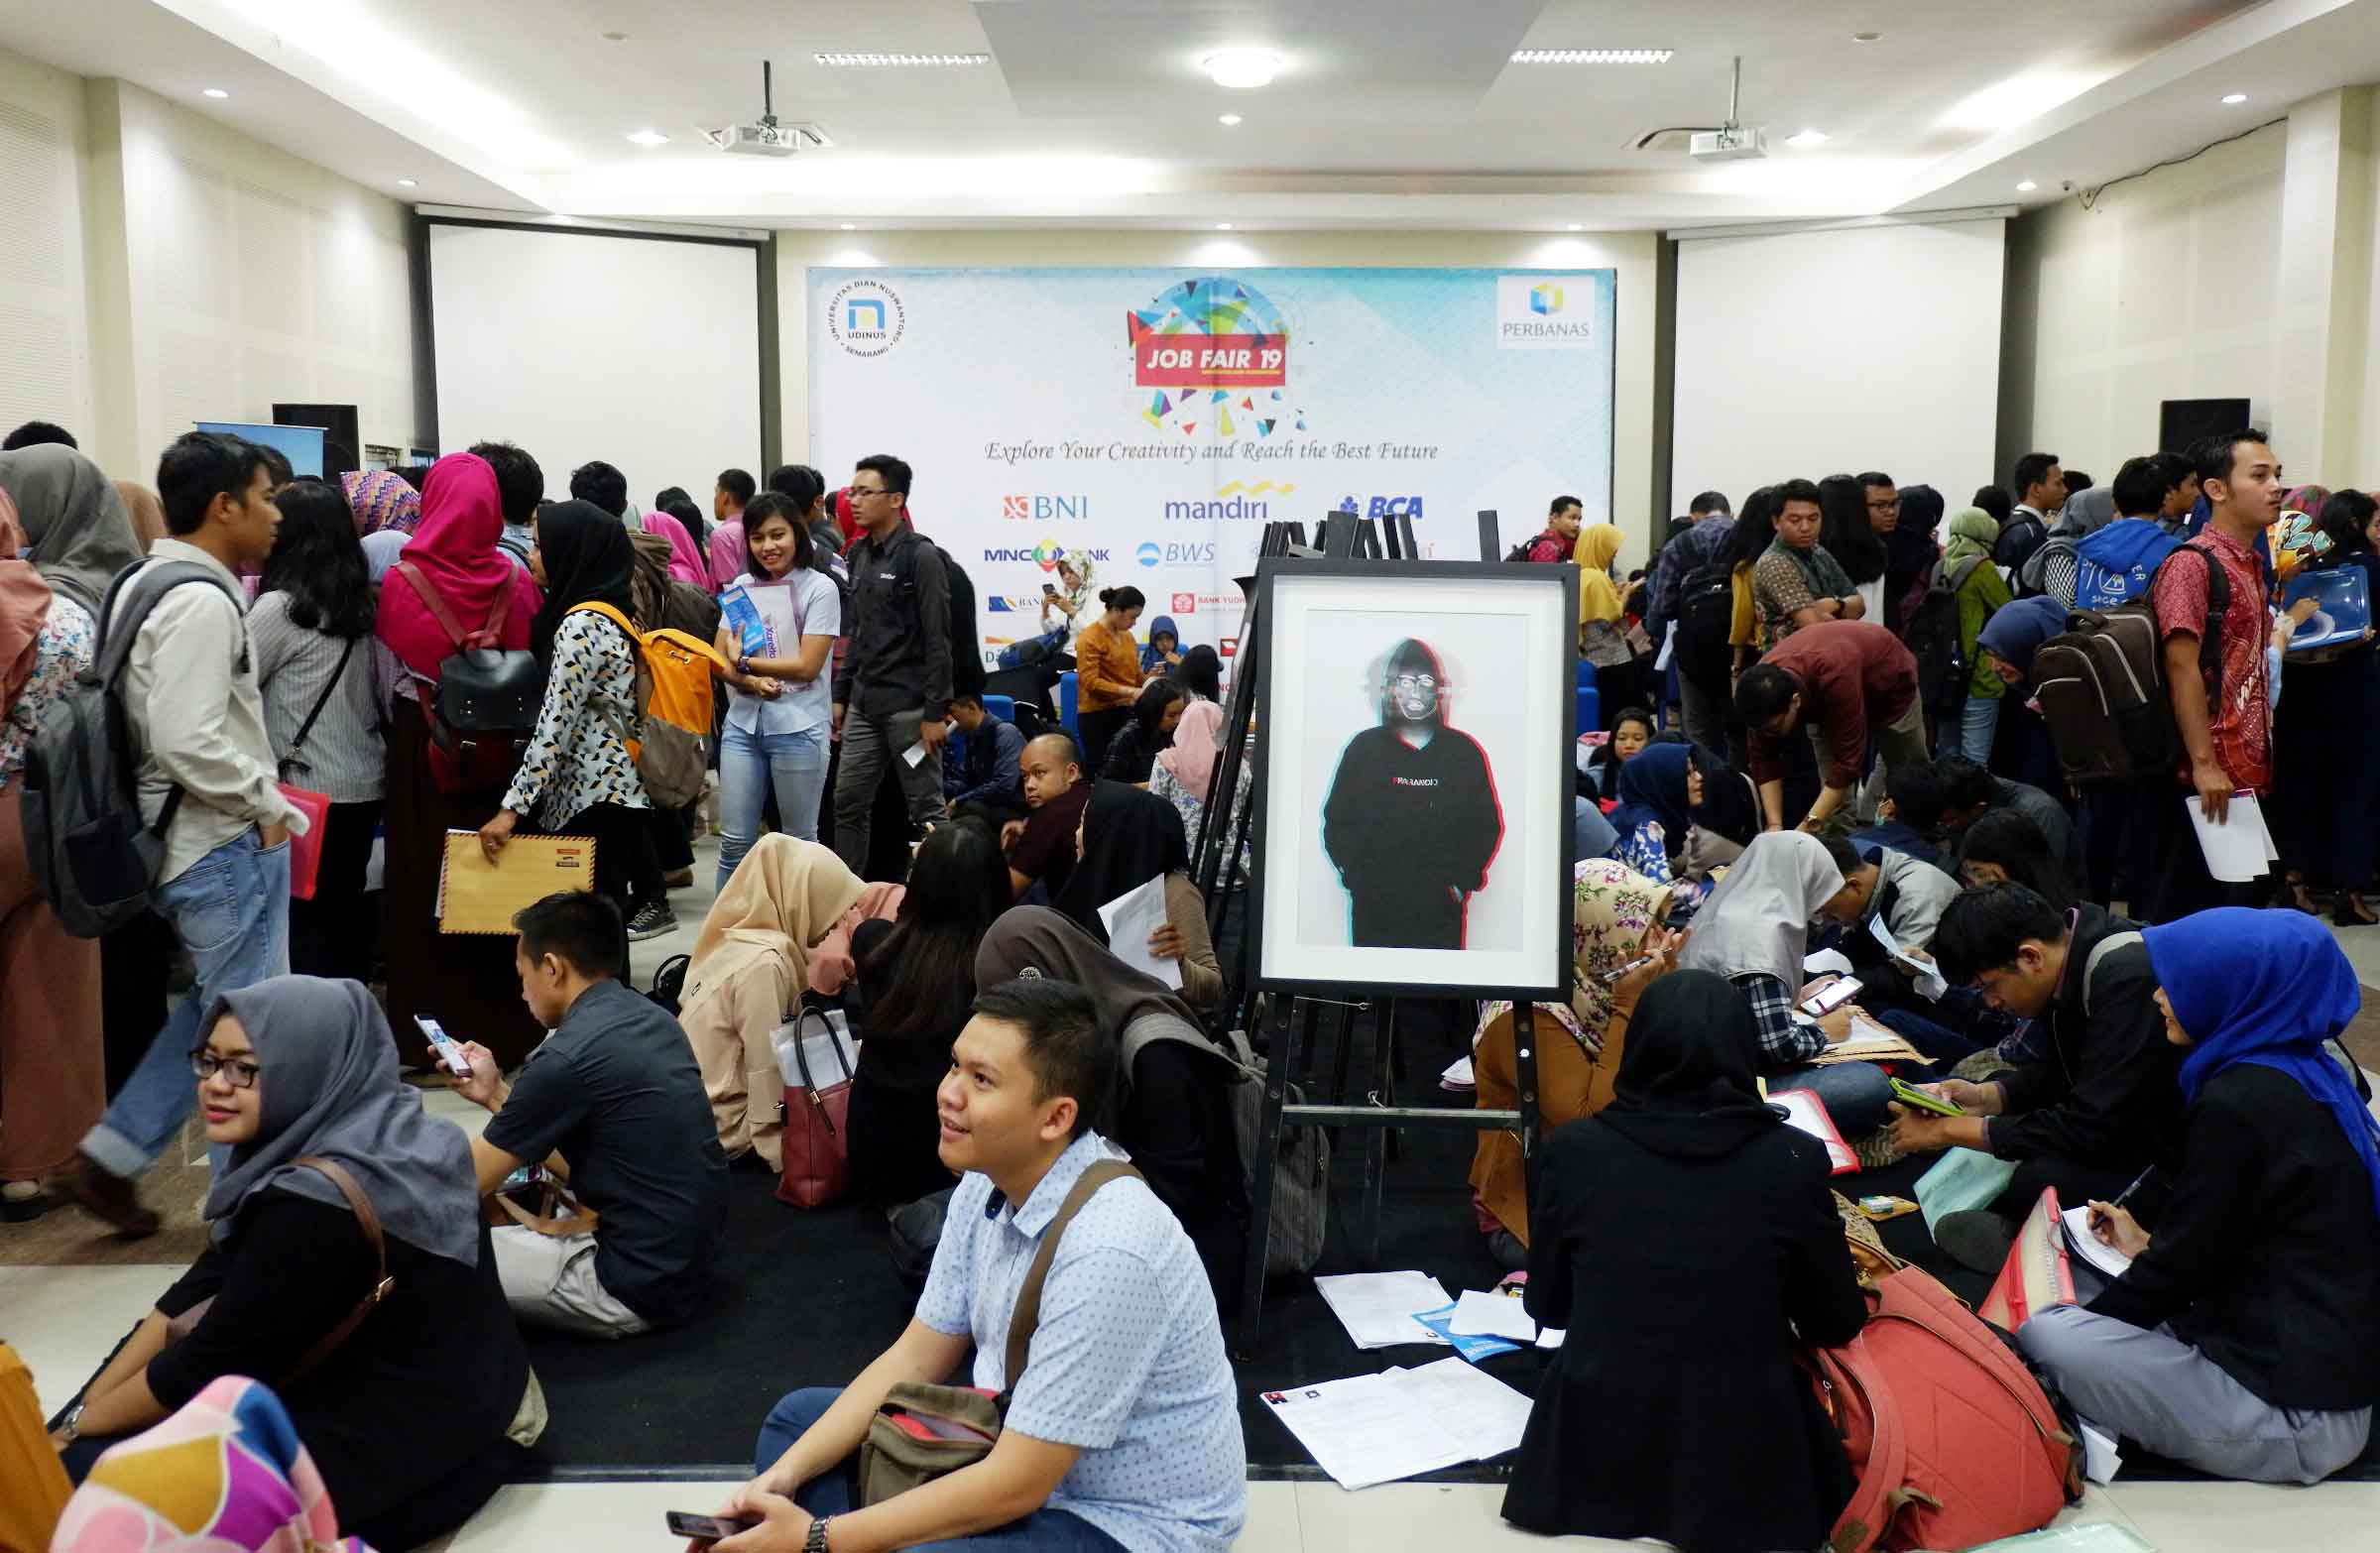 THOUSANDS OF JOB SEEKERS COME TO THE 19TH UDINUS' JOB FESTIVAL